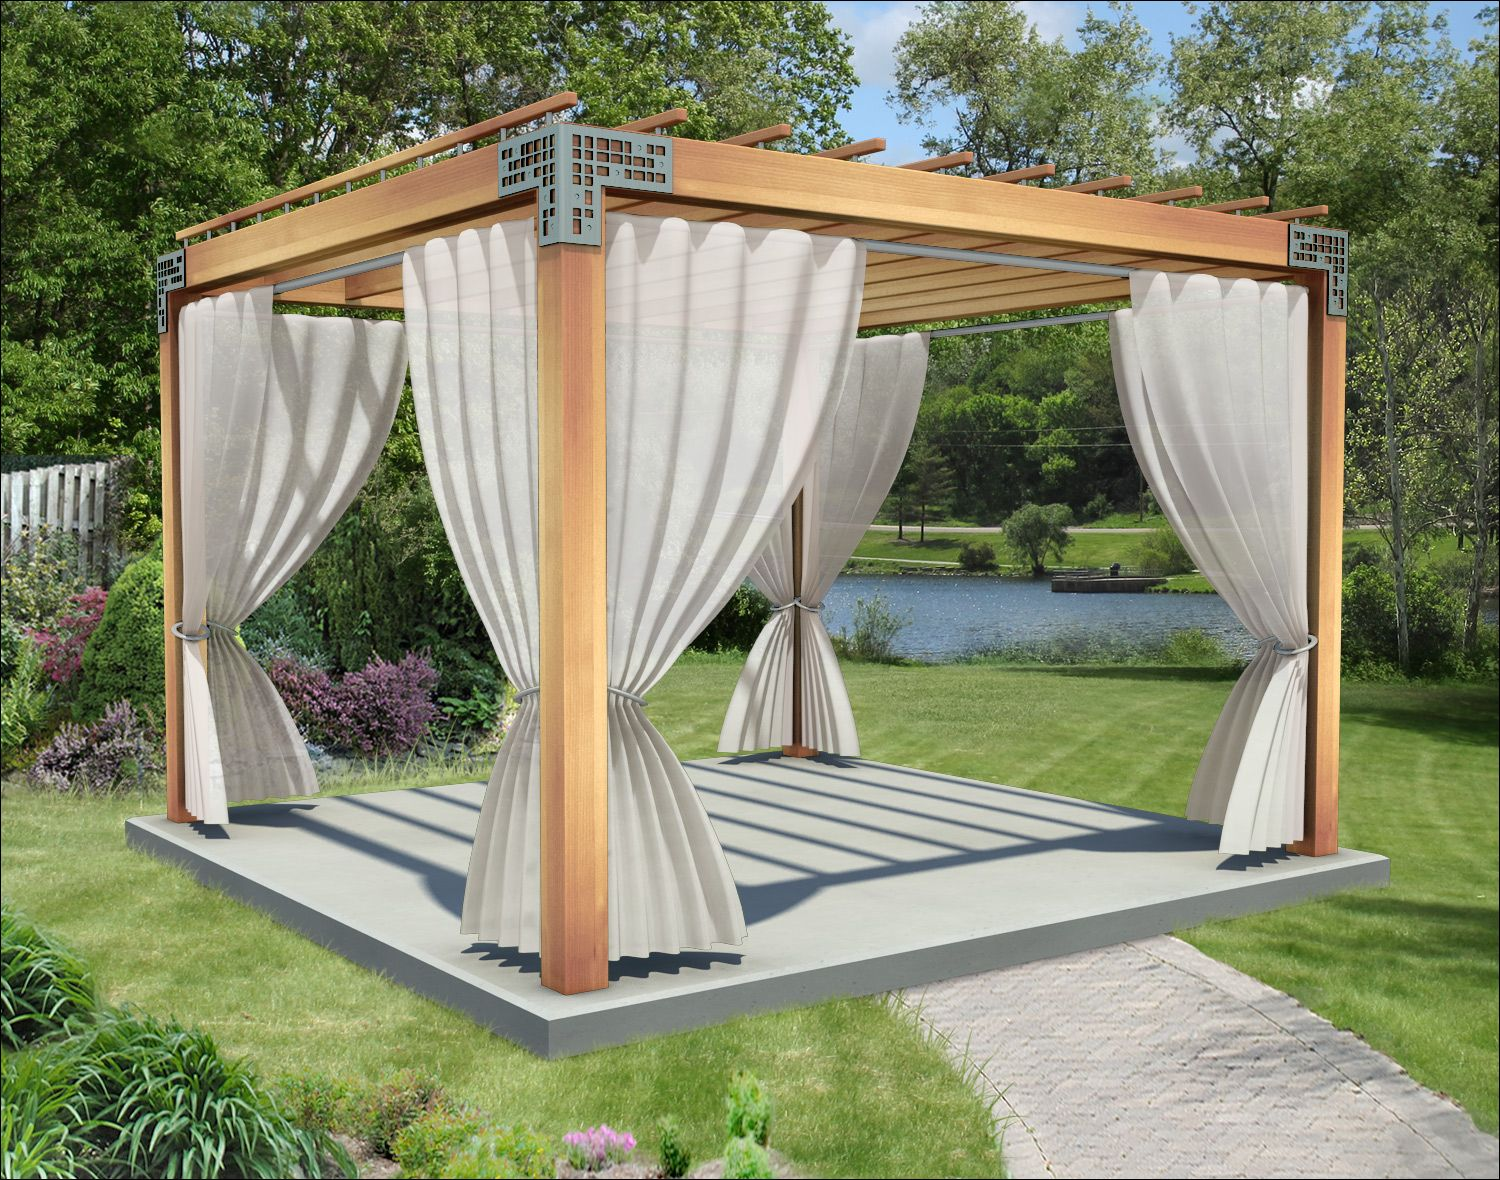 This 10 X 10 Cedar Echoes One Pergola Is Featured Here With 6 X 6 Posts 2 X 8 Header Beams 2 X 6 Runner Outdoor Pergola Backyard Pergola Small Pergola